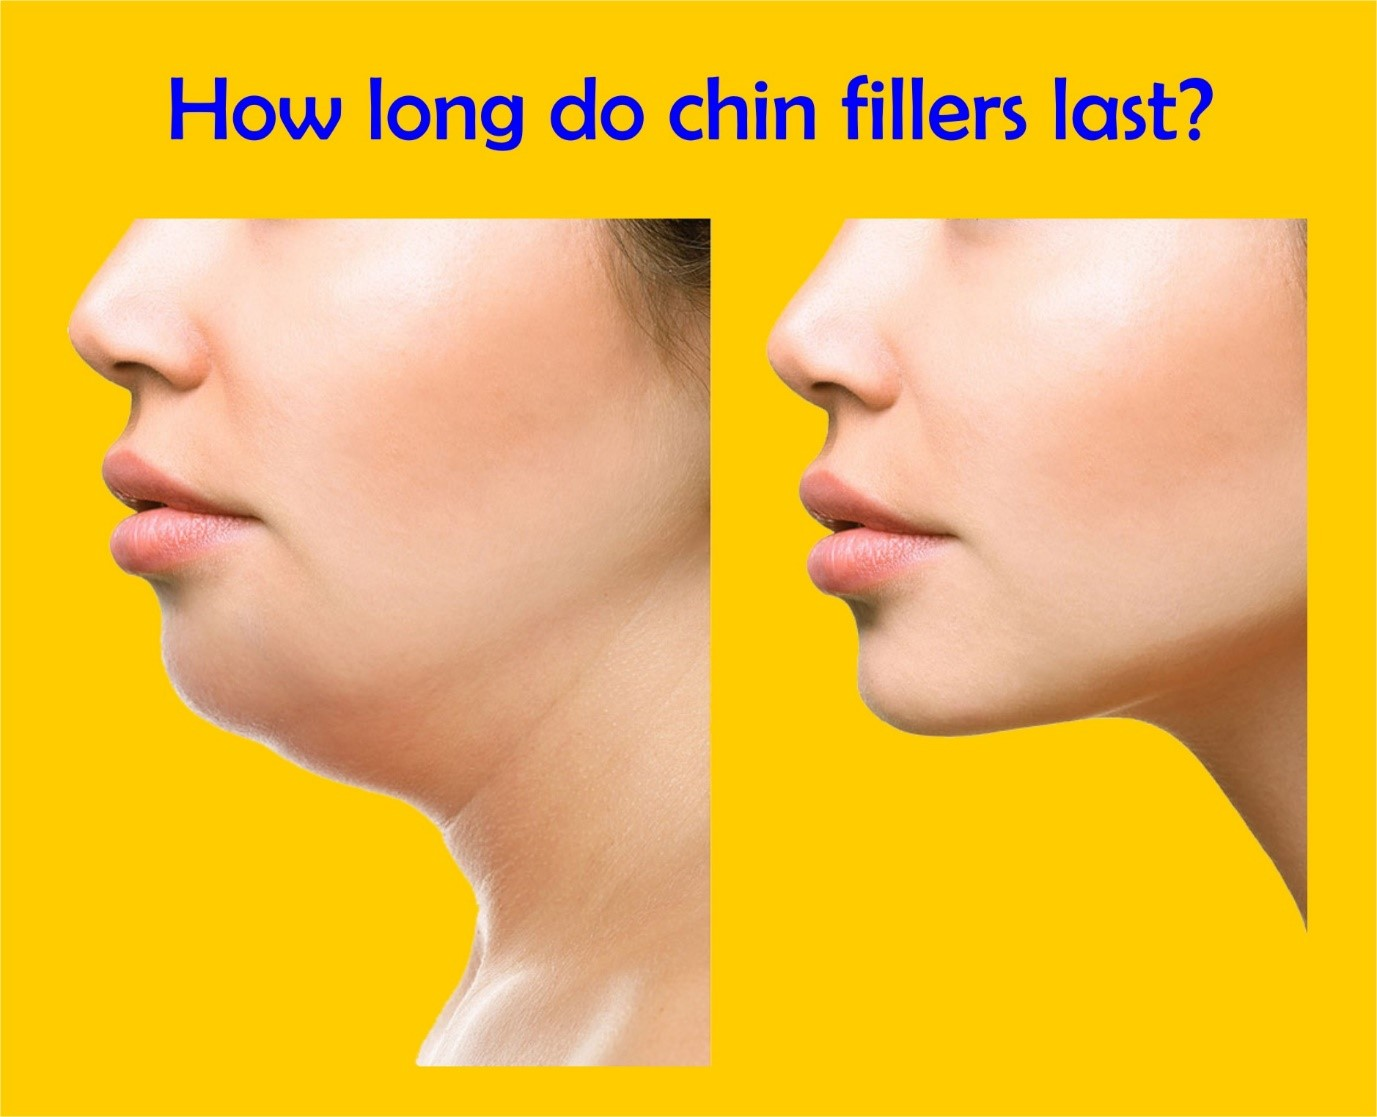 How long do chin fillers last